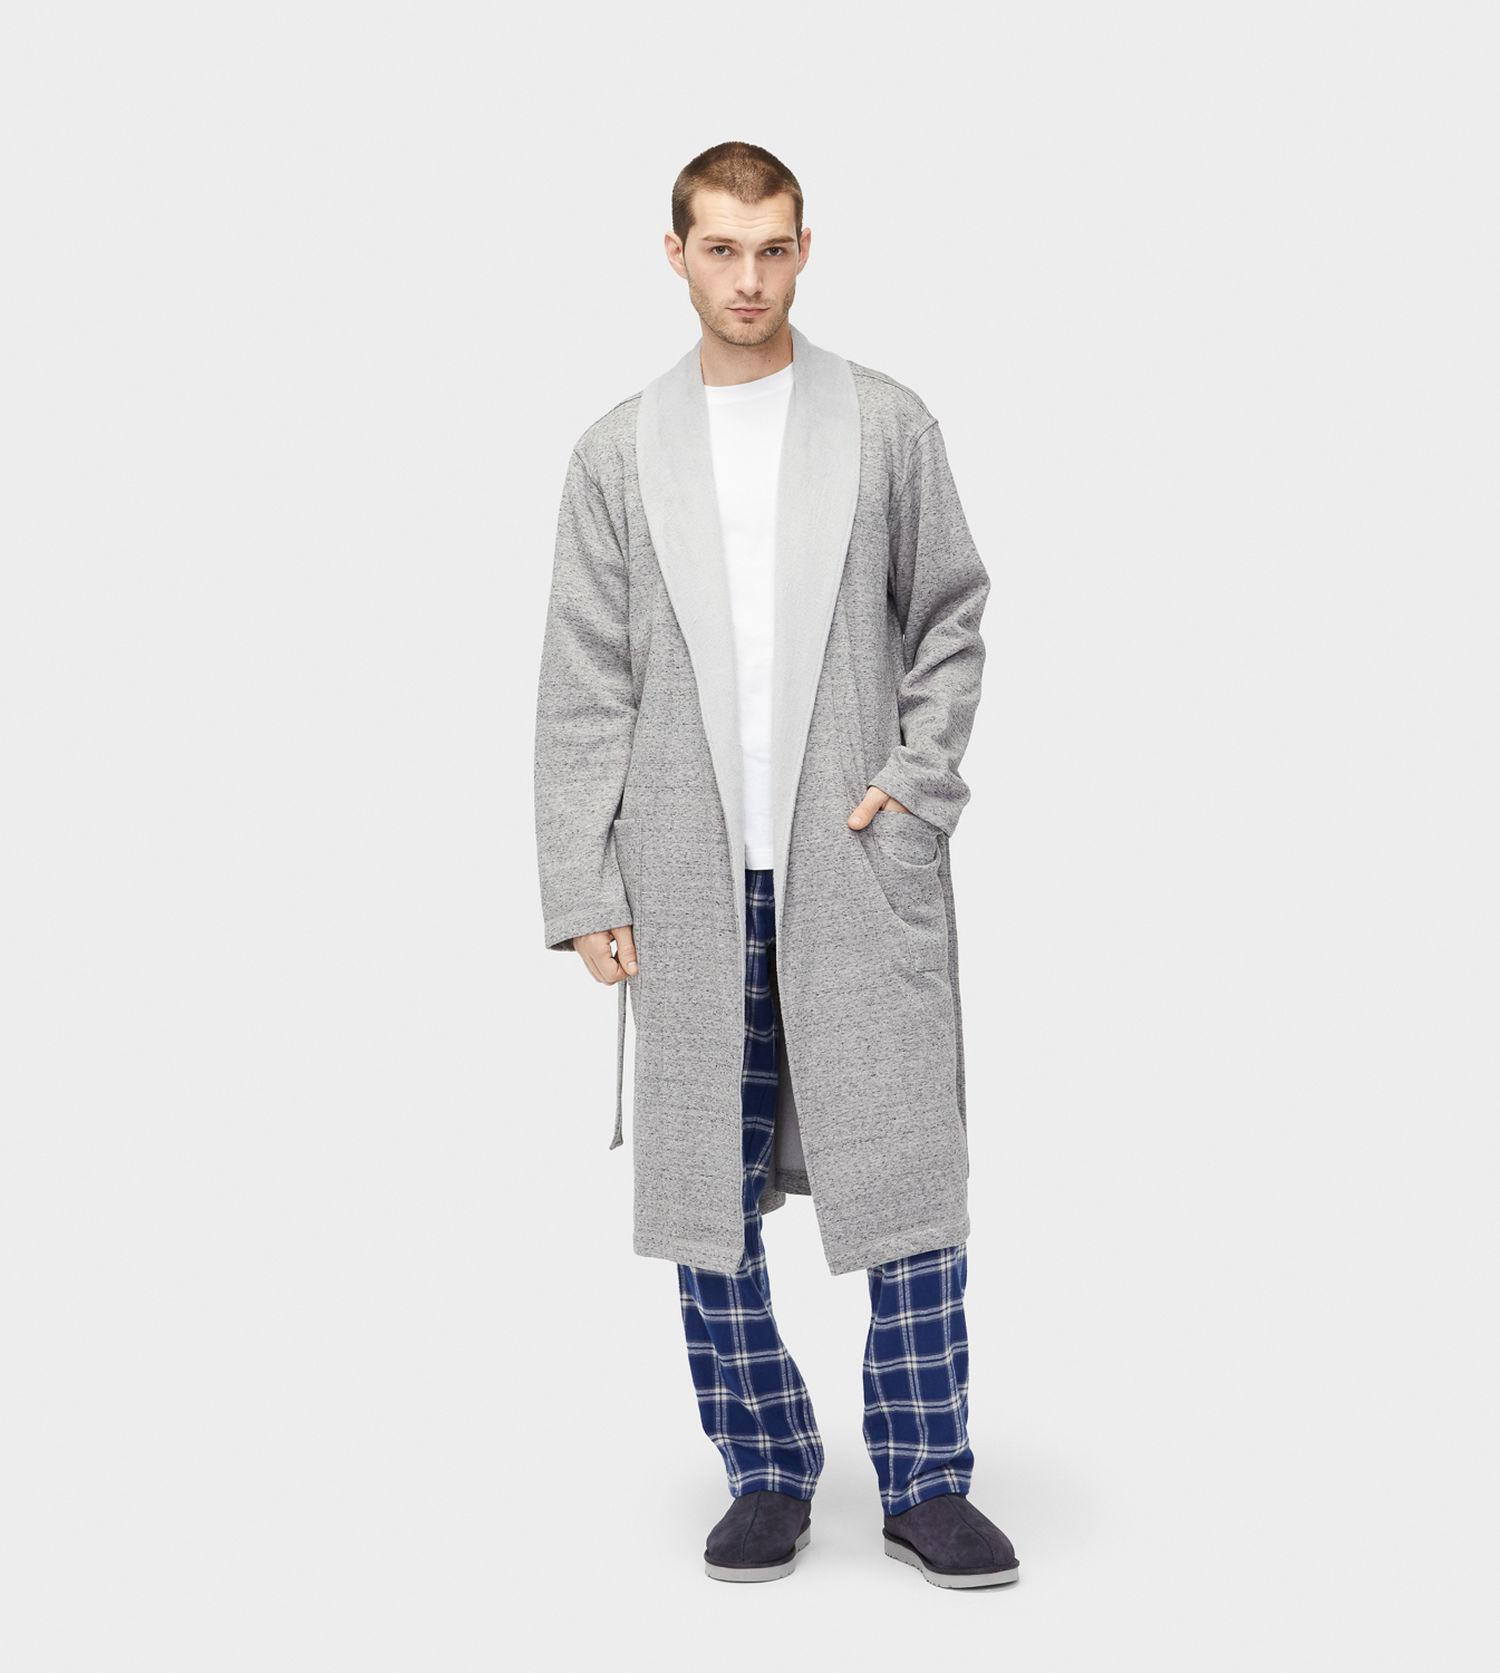 Lyst - Ugg Men s Share This Product Robinson Robe in Gray for Men 37a73575e